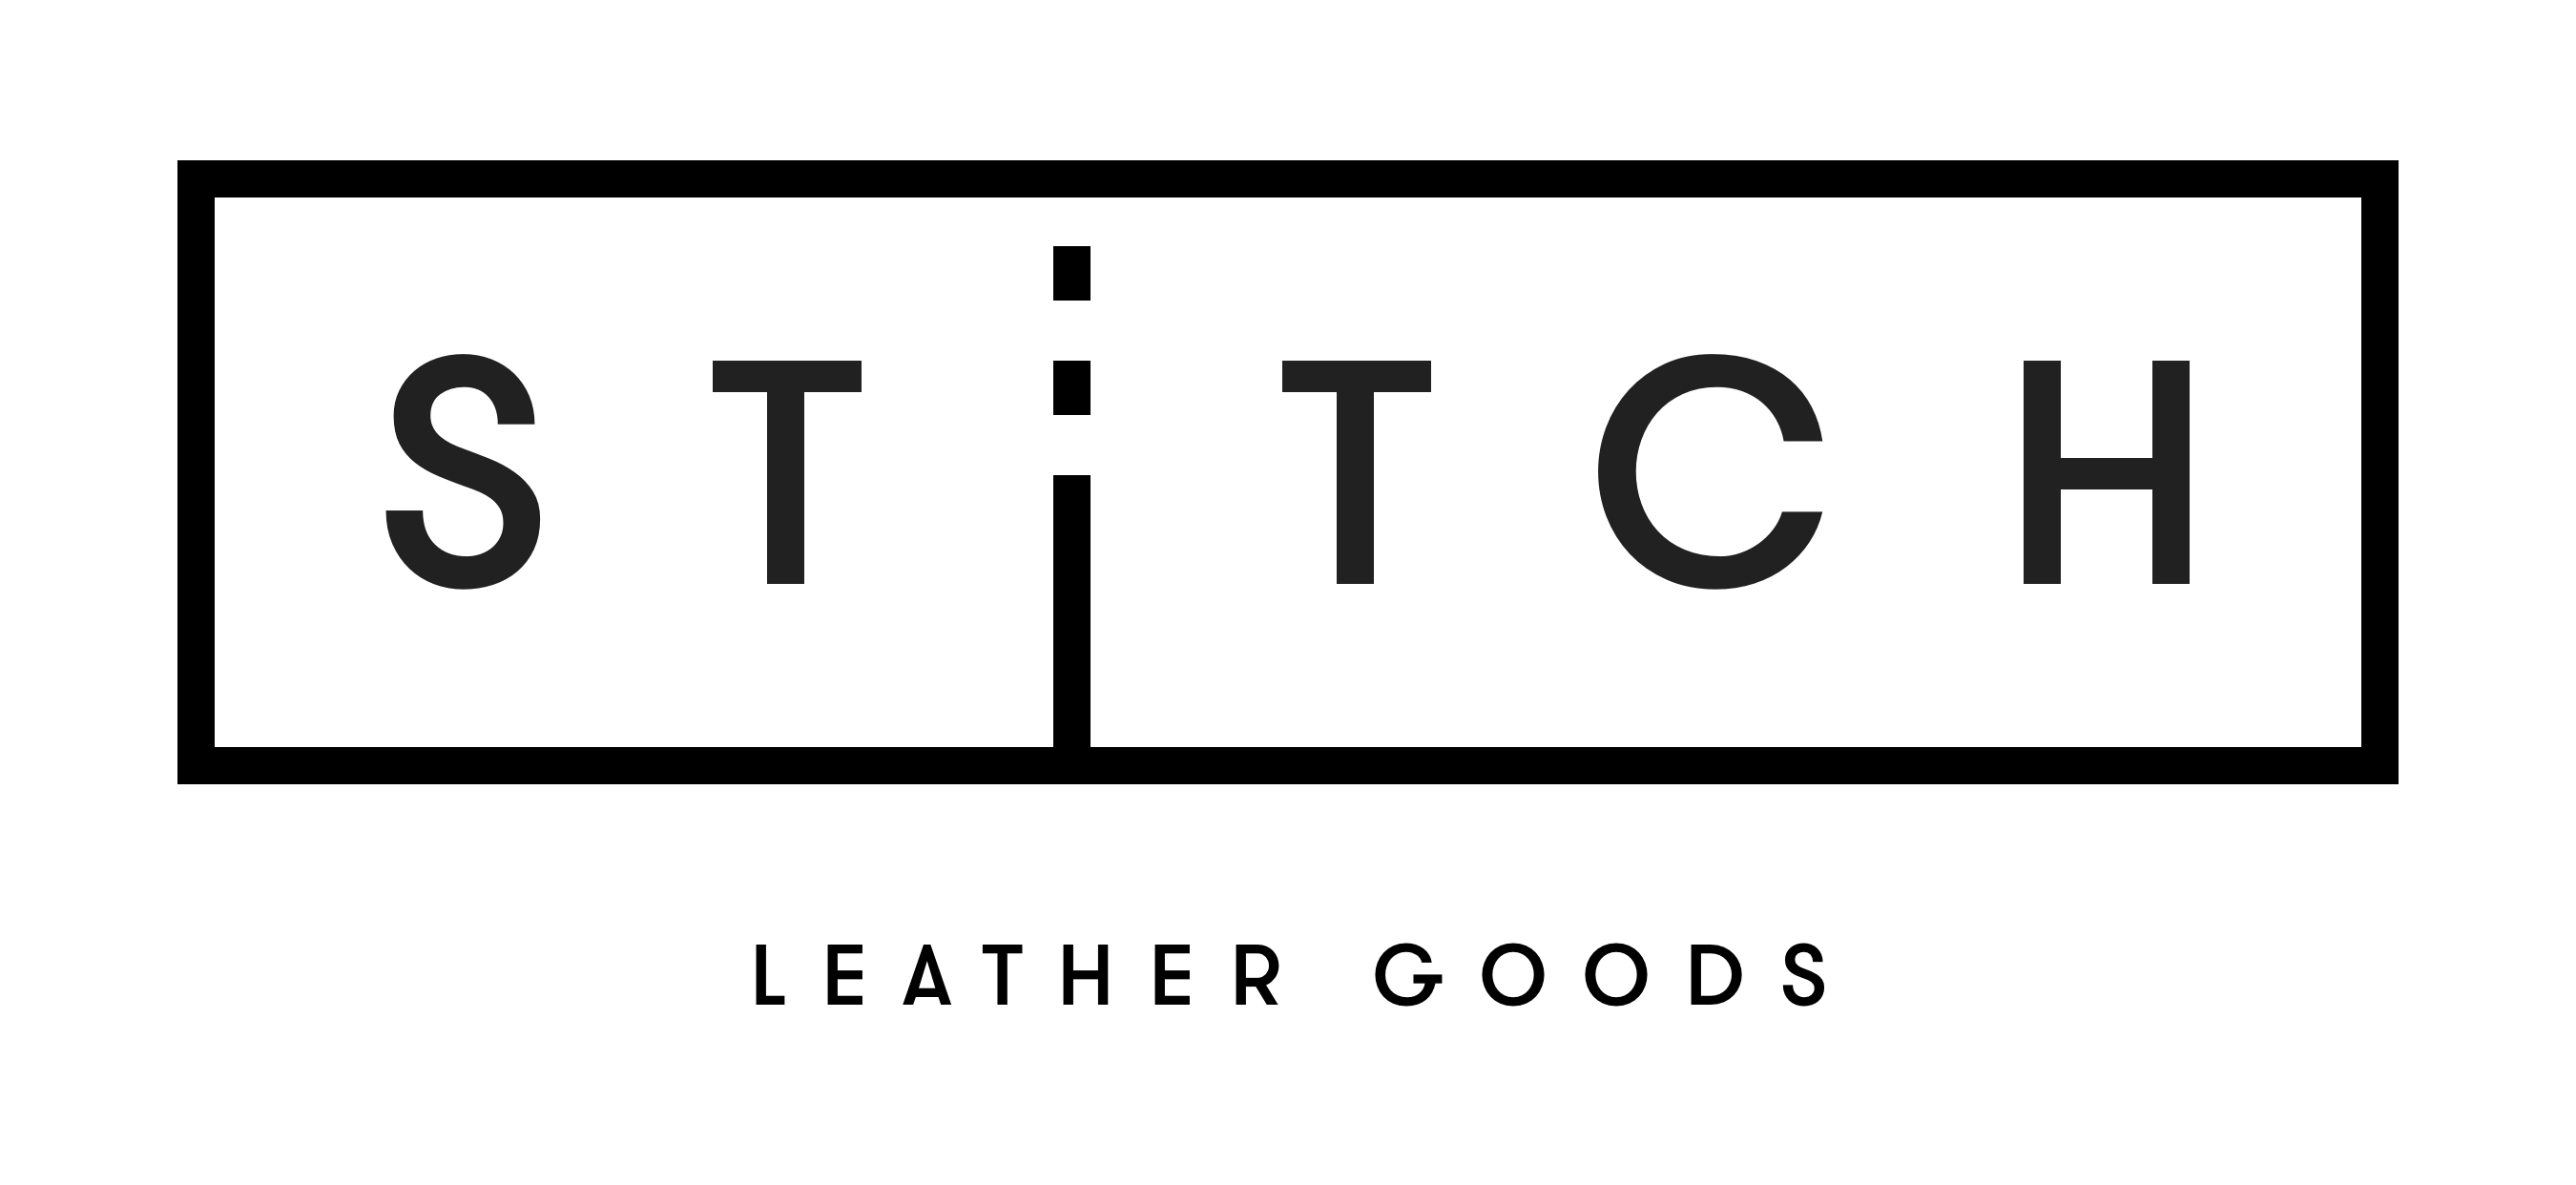 Minimalist Luxury Leather Goods By Stitch Leather Goods Proudly Handmade For A Modern Gentleman